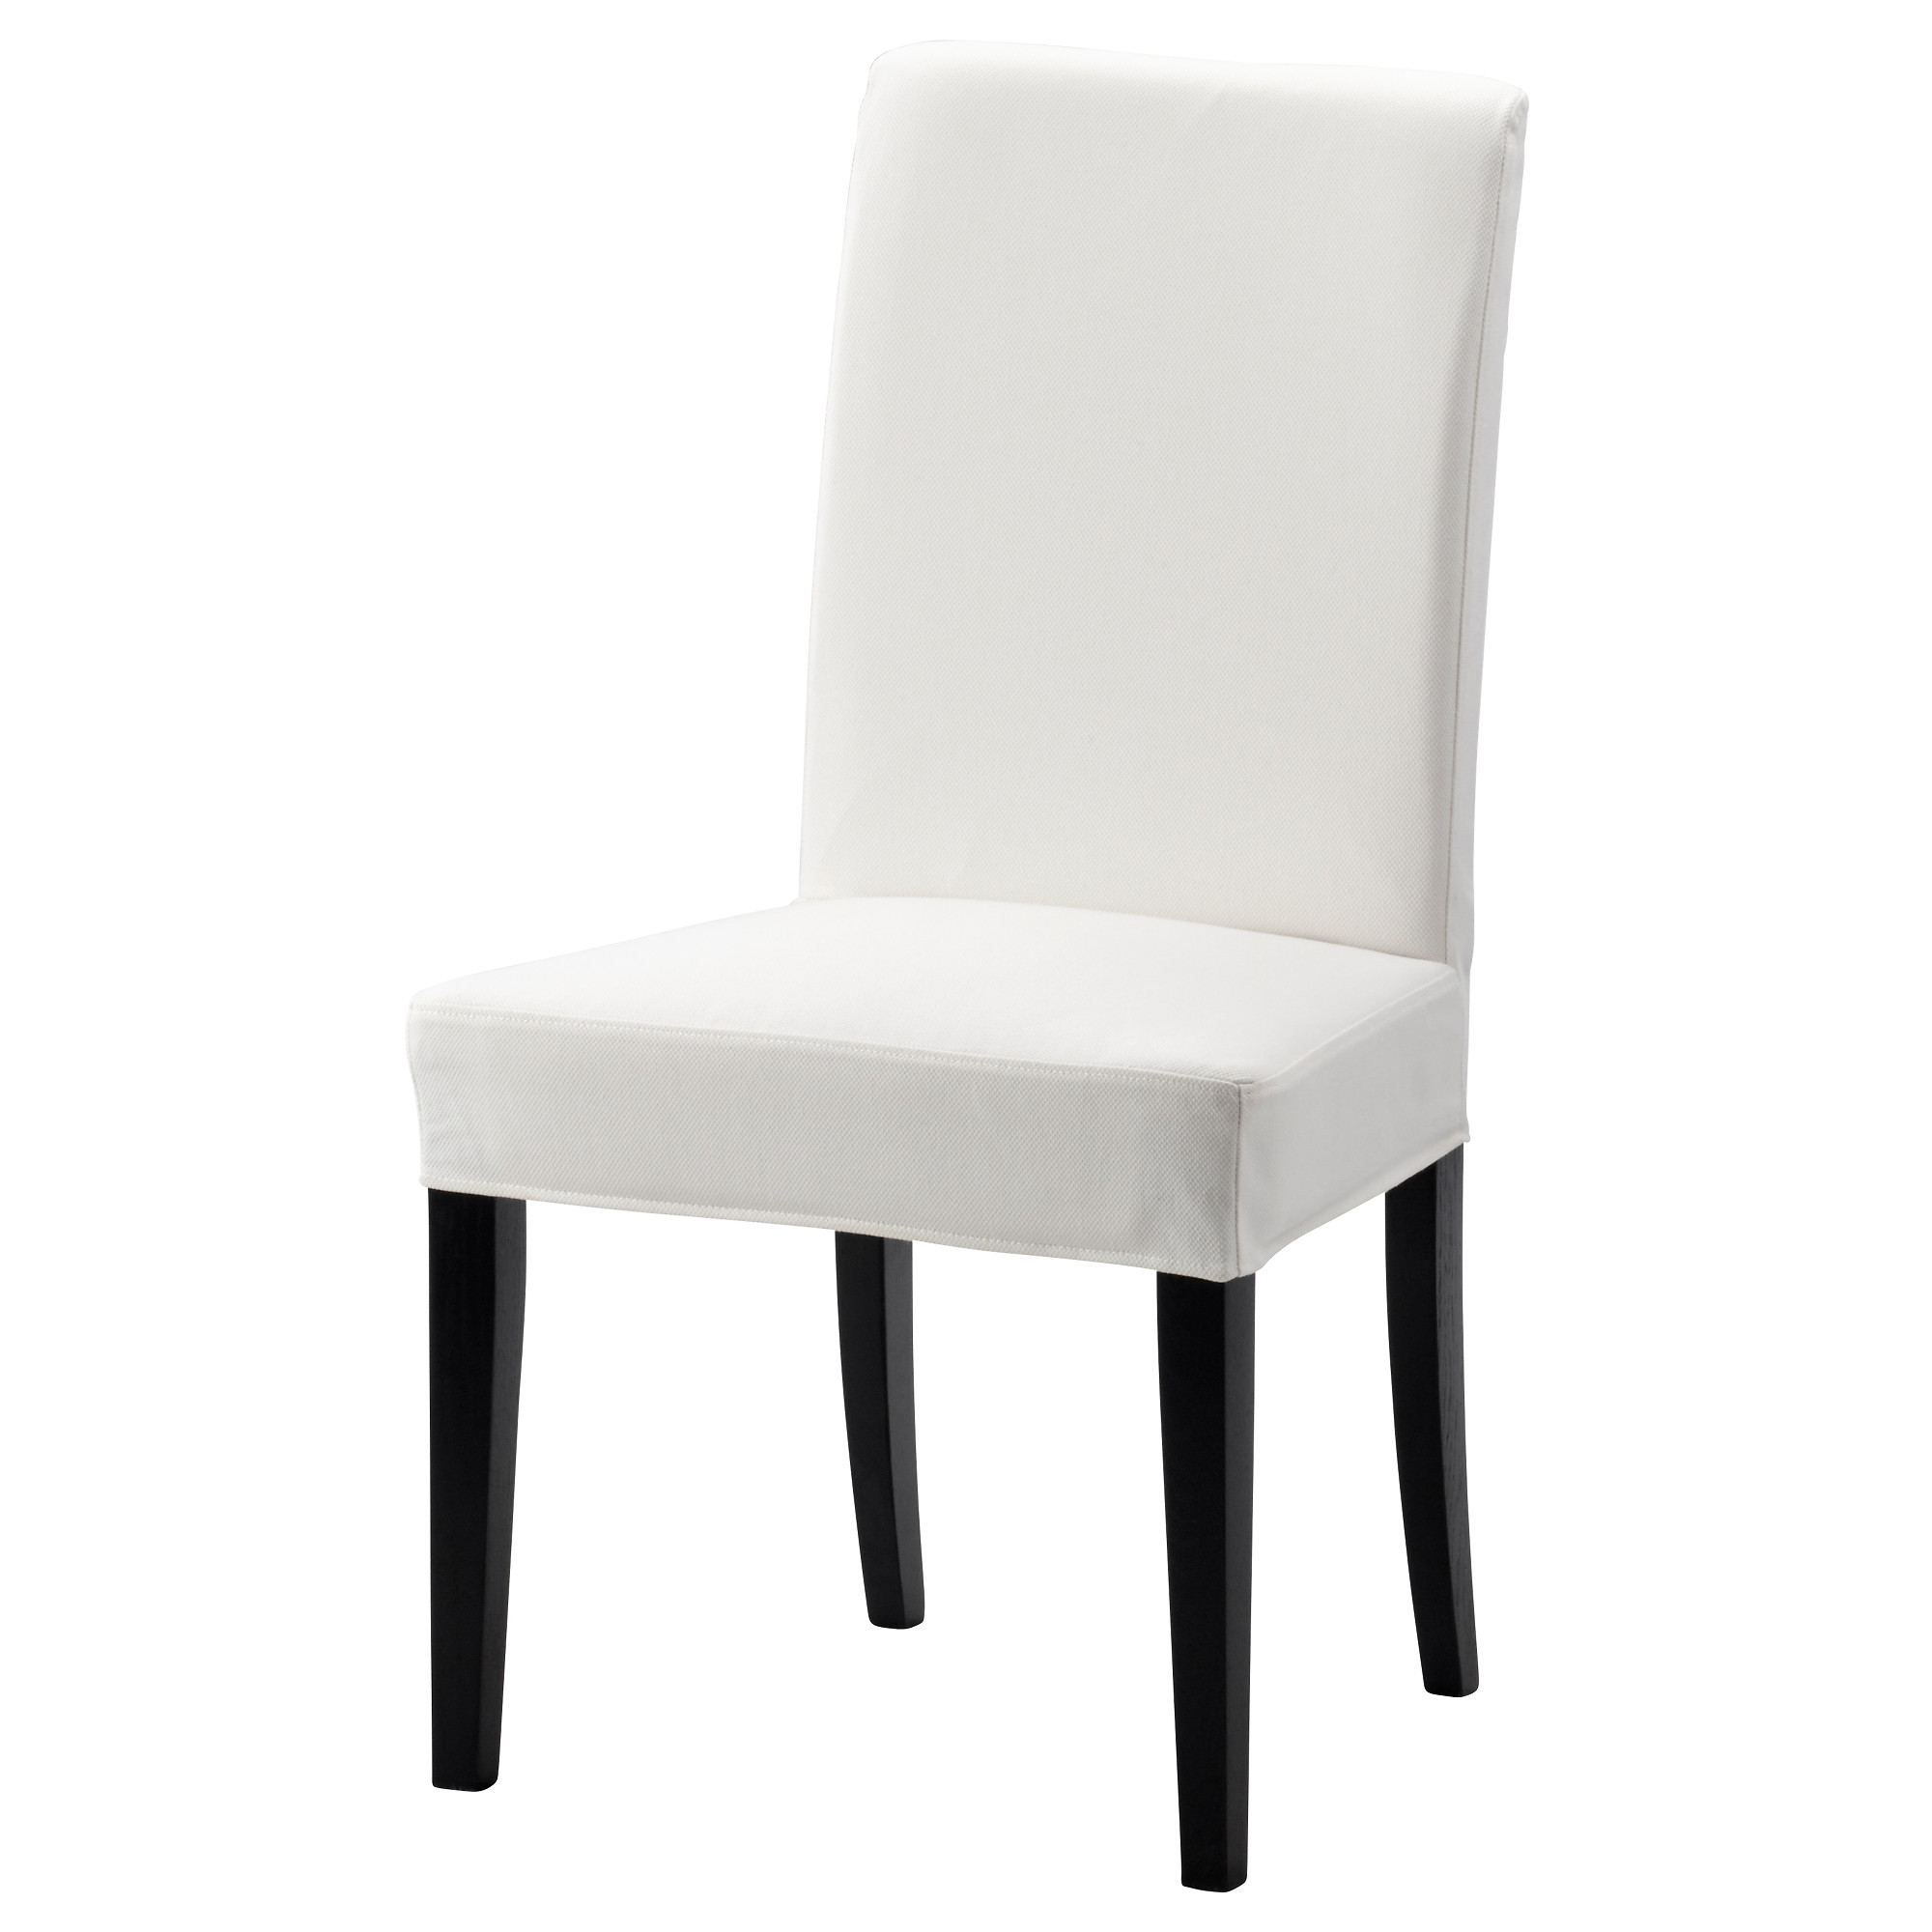 white dining chairs henriksdal chair, brown-black, gräsbo white tested for: 243 lb width: NWQRQAC